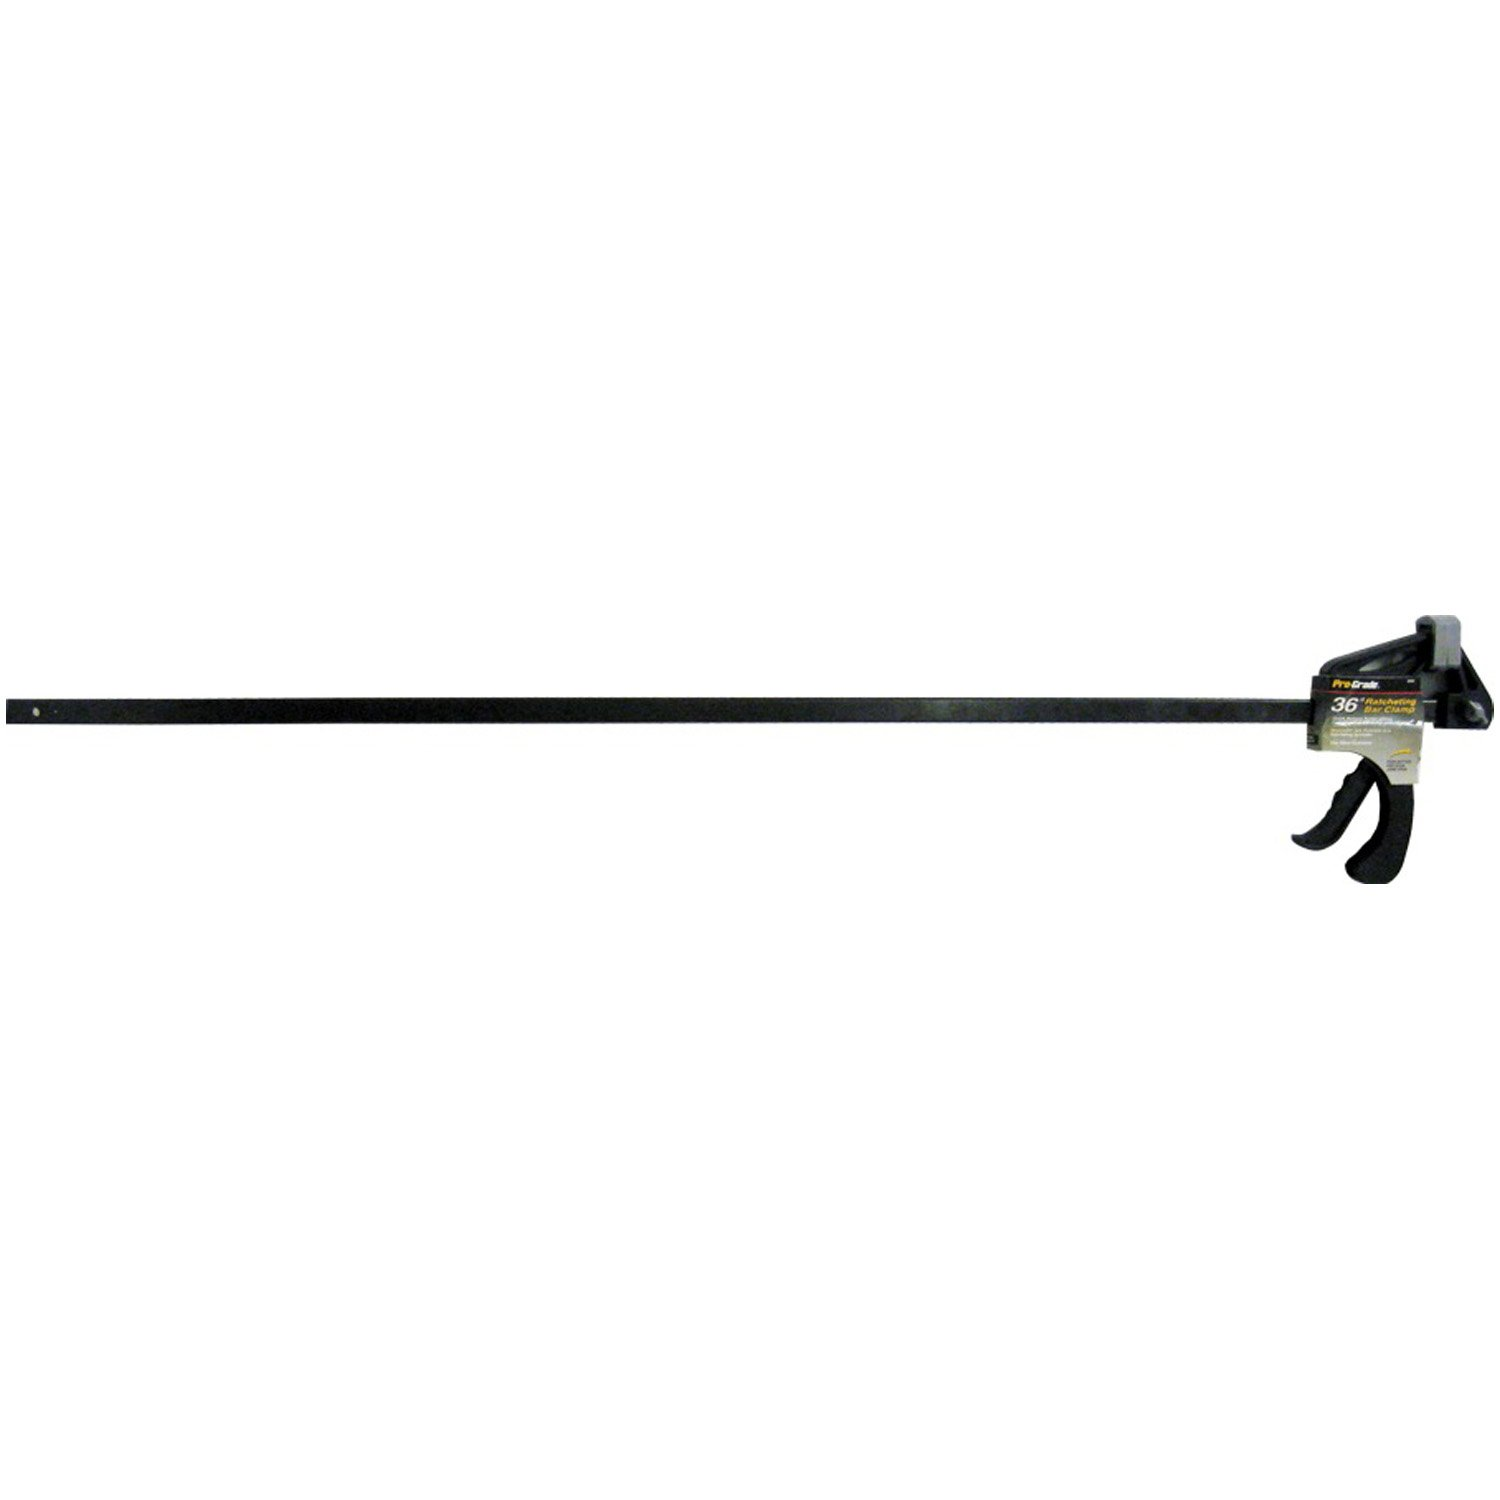 Pro-Grade 59160 Ratcheting Bar Clamp, 36-Inch